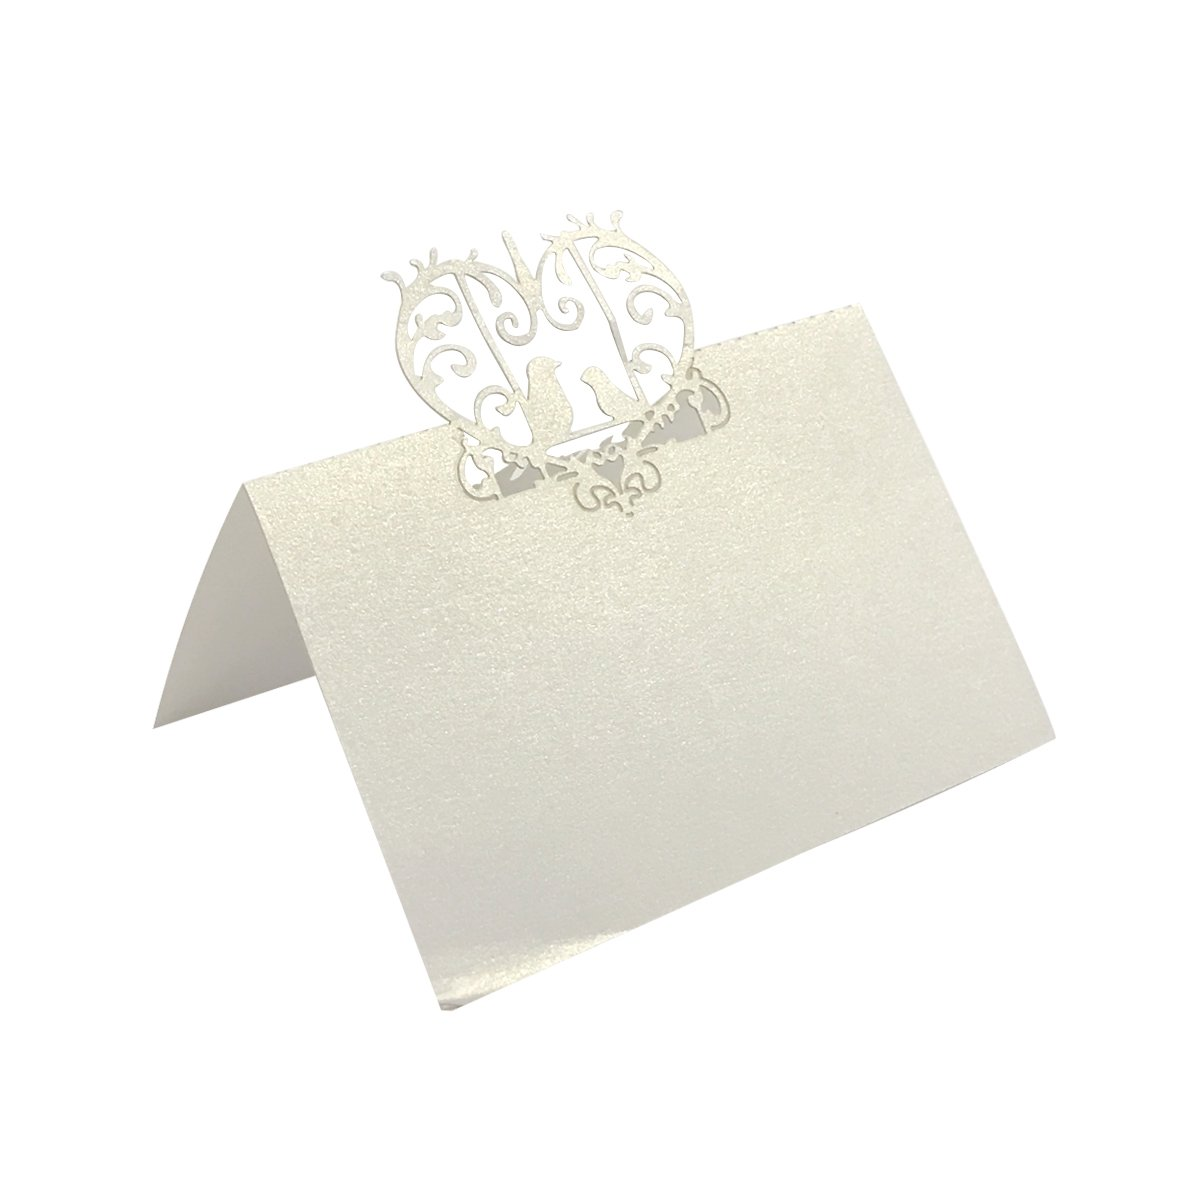 Allydrew Laser Cut Wedding Table Setting Place Cards (Set of 50), Birds